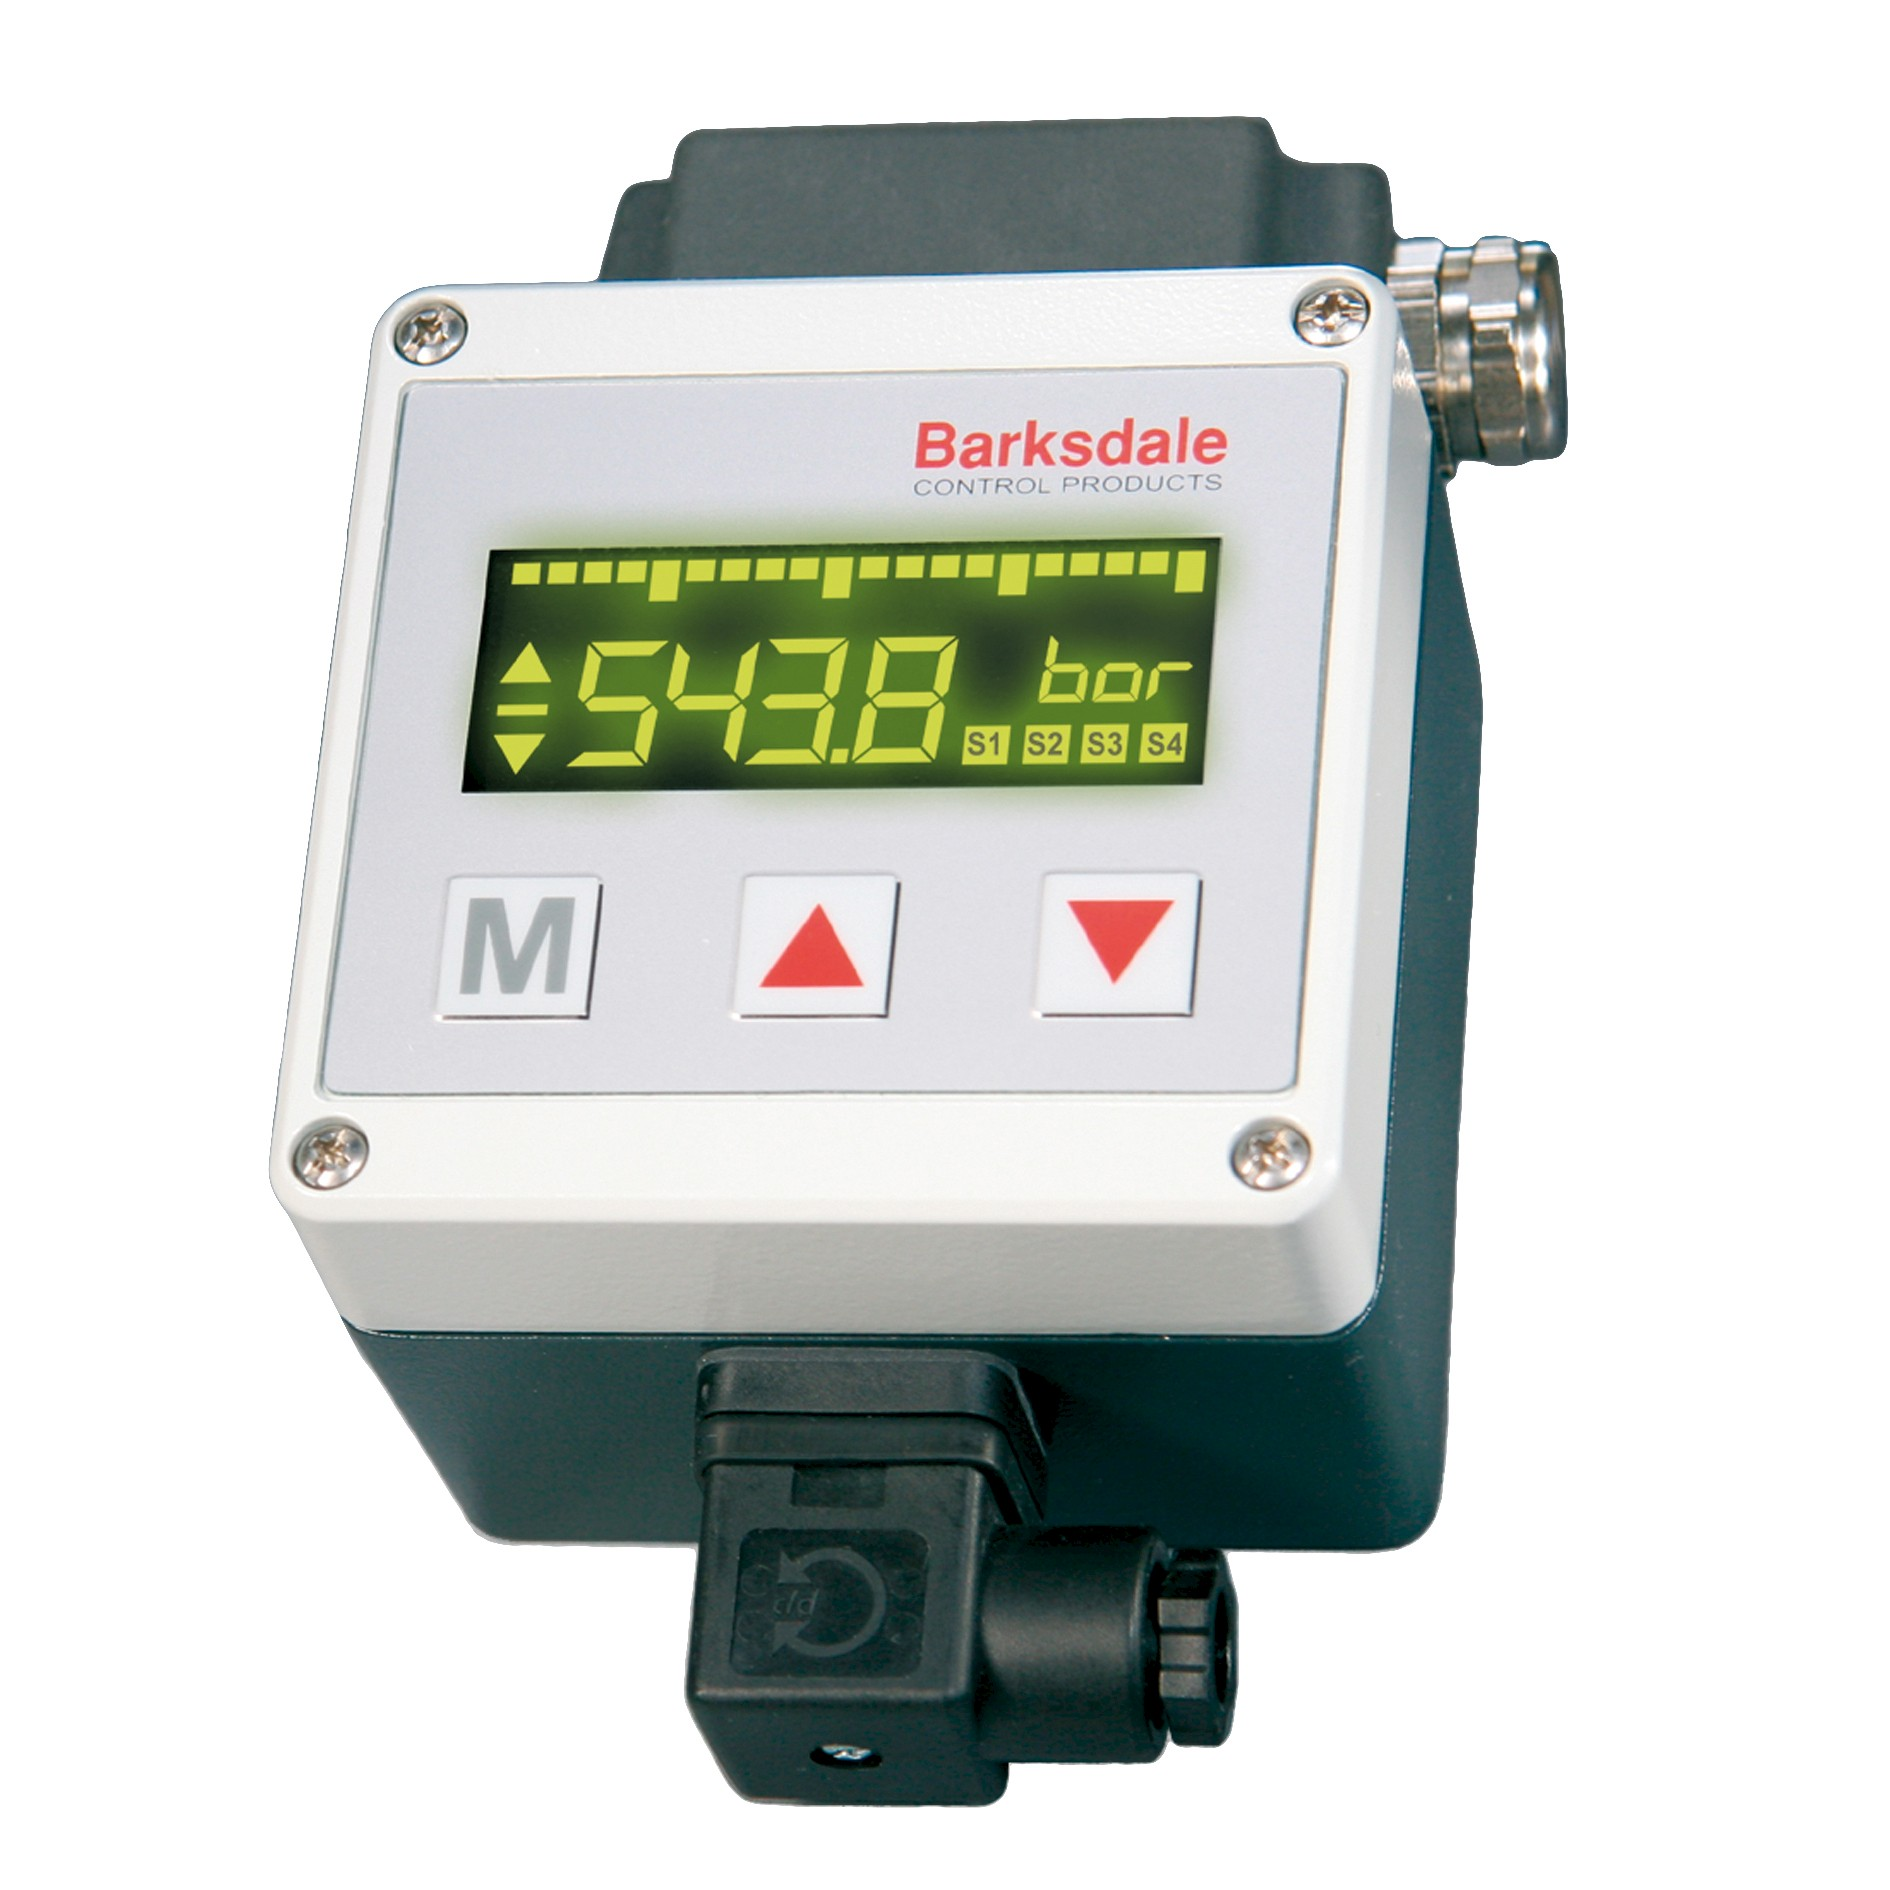 Barksdale UDS3 Electronic Pressure Switch - Pressure Switches | PCT